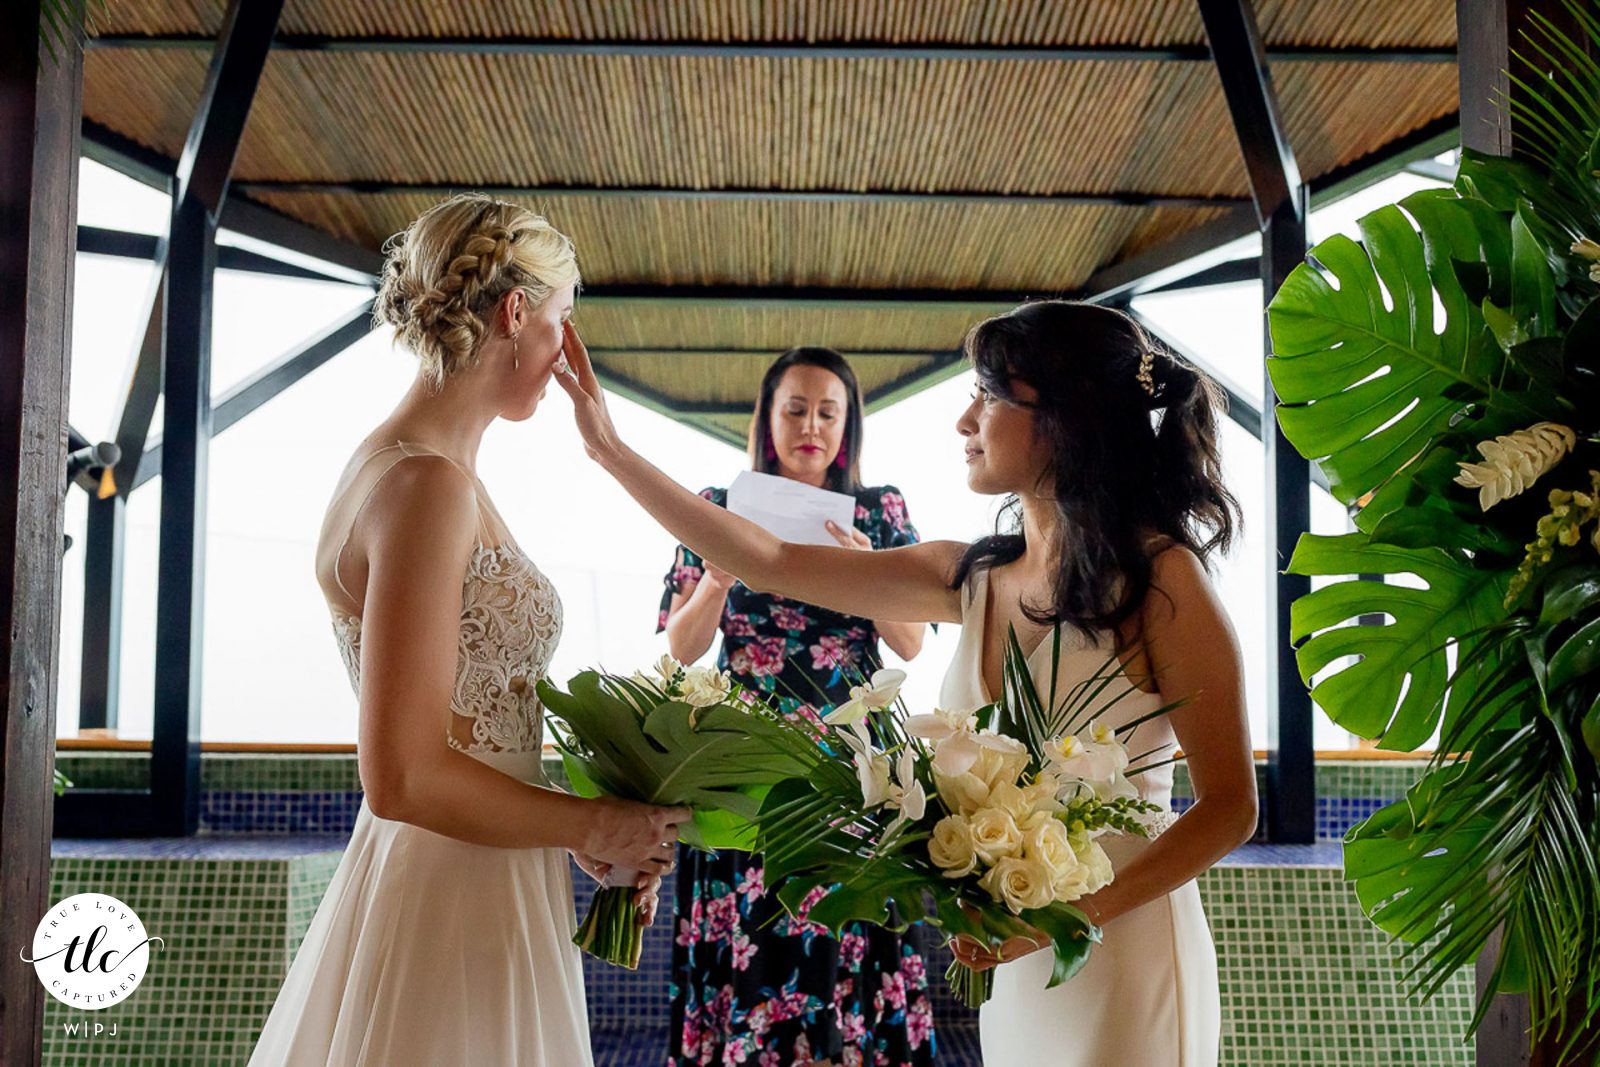 Punto de Vista, Manuel Antonio, Costa Rica emotional ceremony moment pic created as bride wipes tear from her soon to be wife